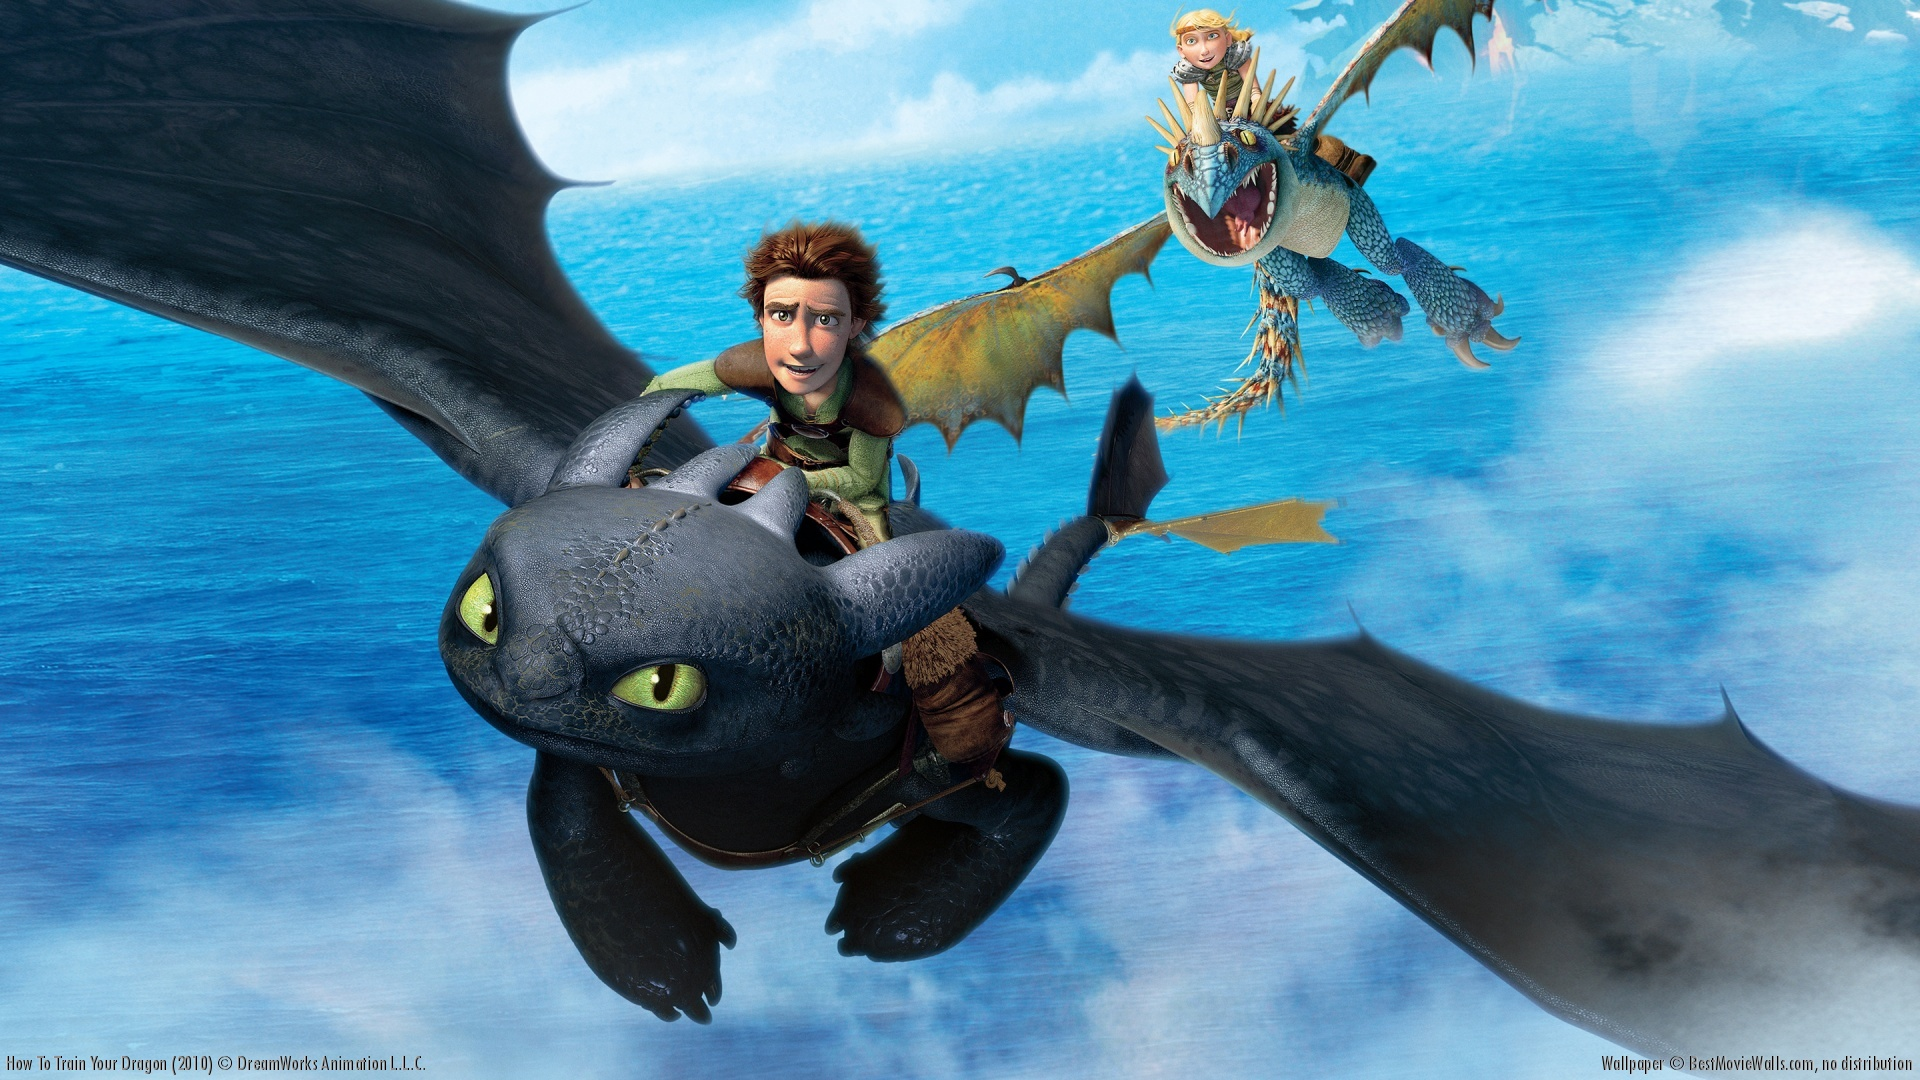 How To Train Your Dragon Wallpaper Train Your Dragon 2010 2961144 Hd Wallpaper Backgrounds Download